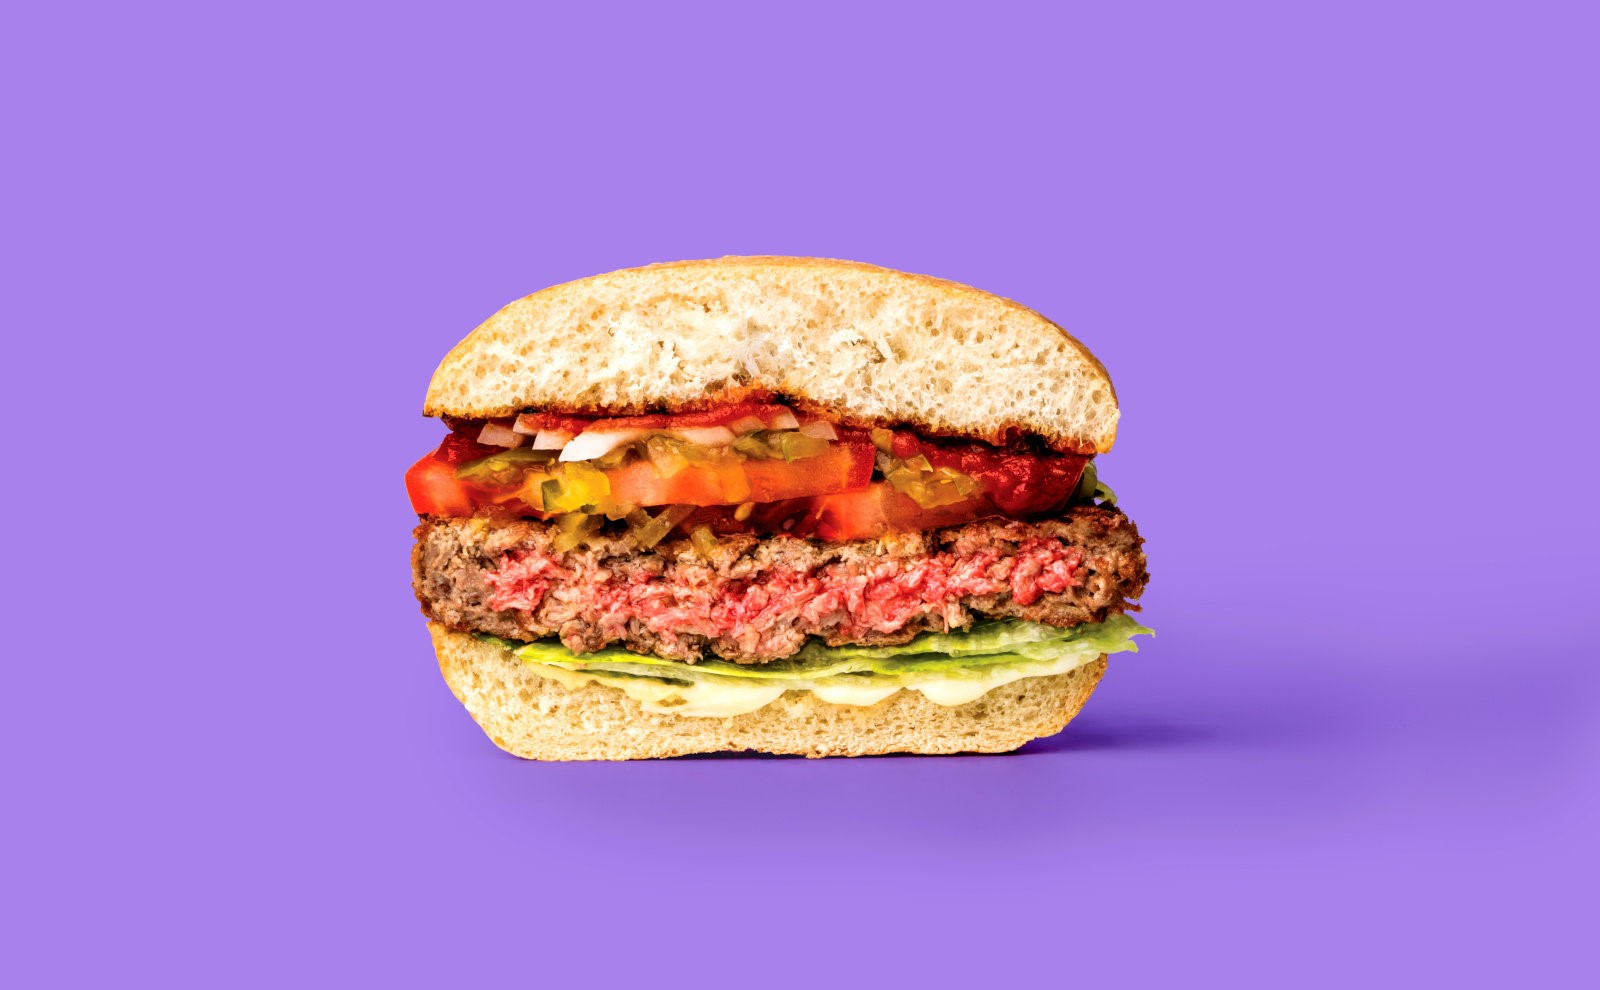 Photo credit: Impossible Foods